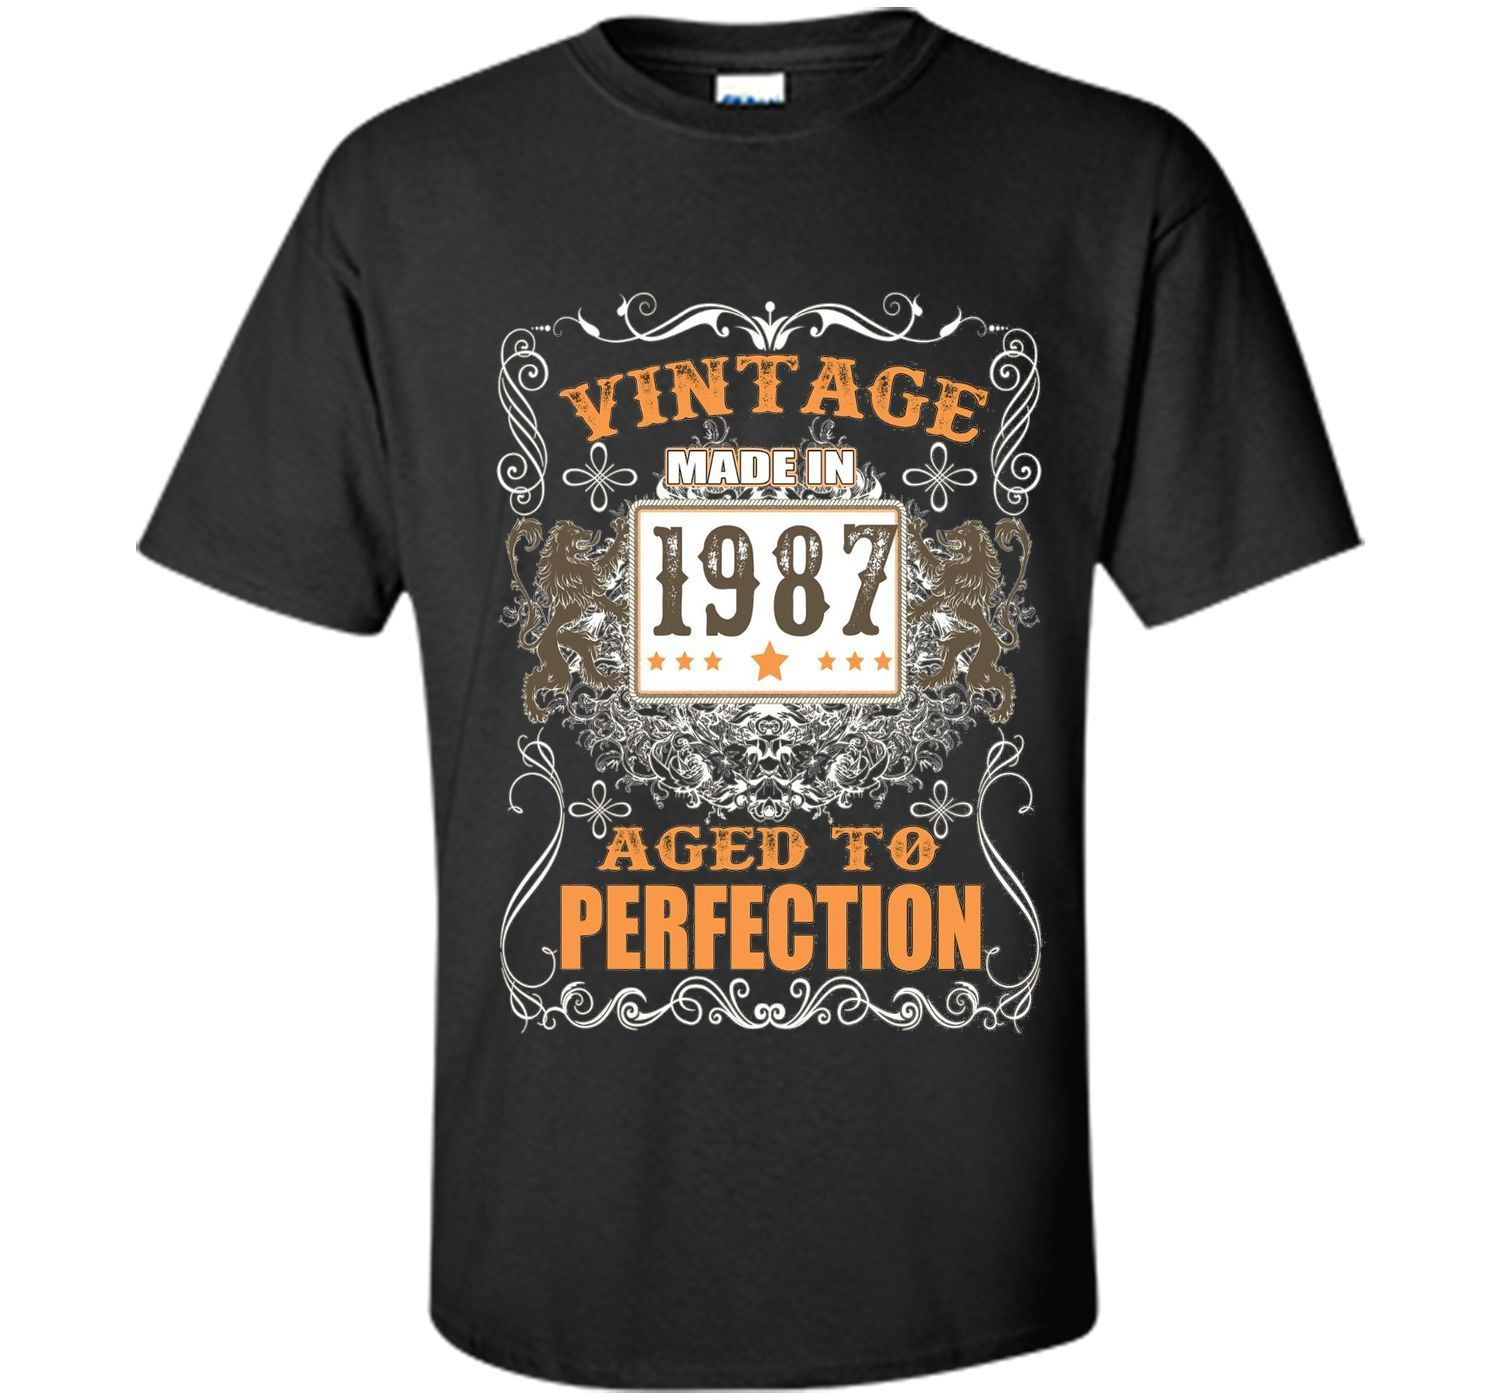 VINTAGE BORN IN 1987 T SHIRT 30 YEARS OLD BIRTHDAY